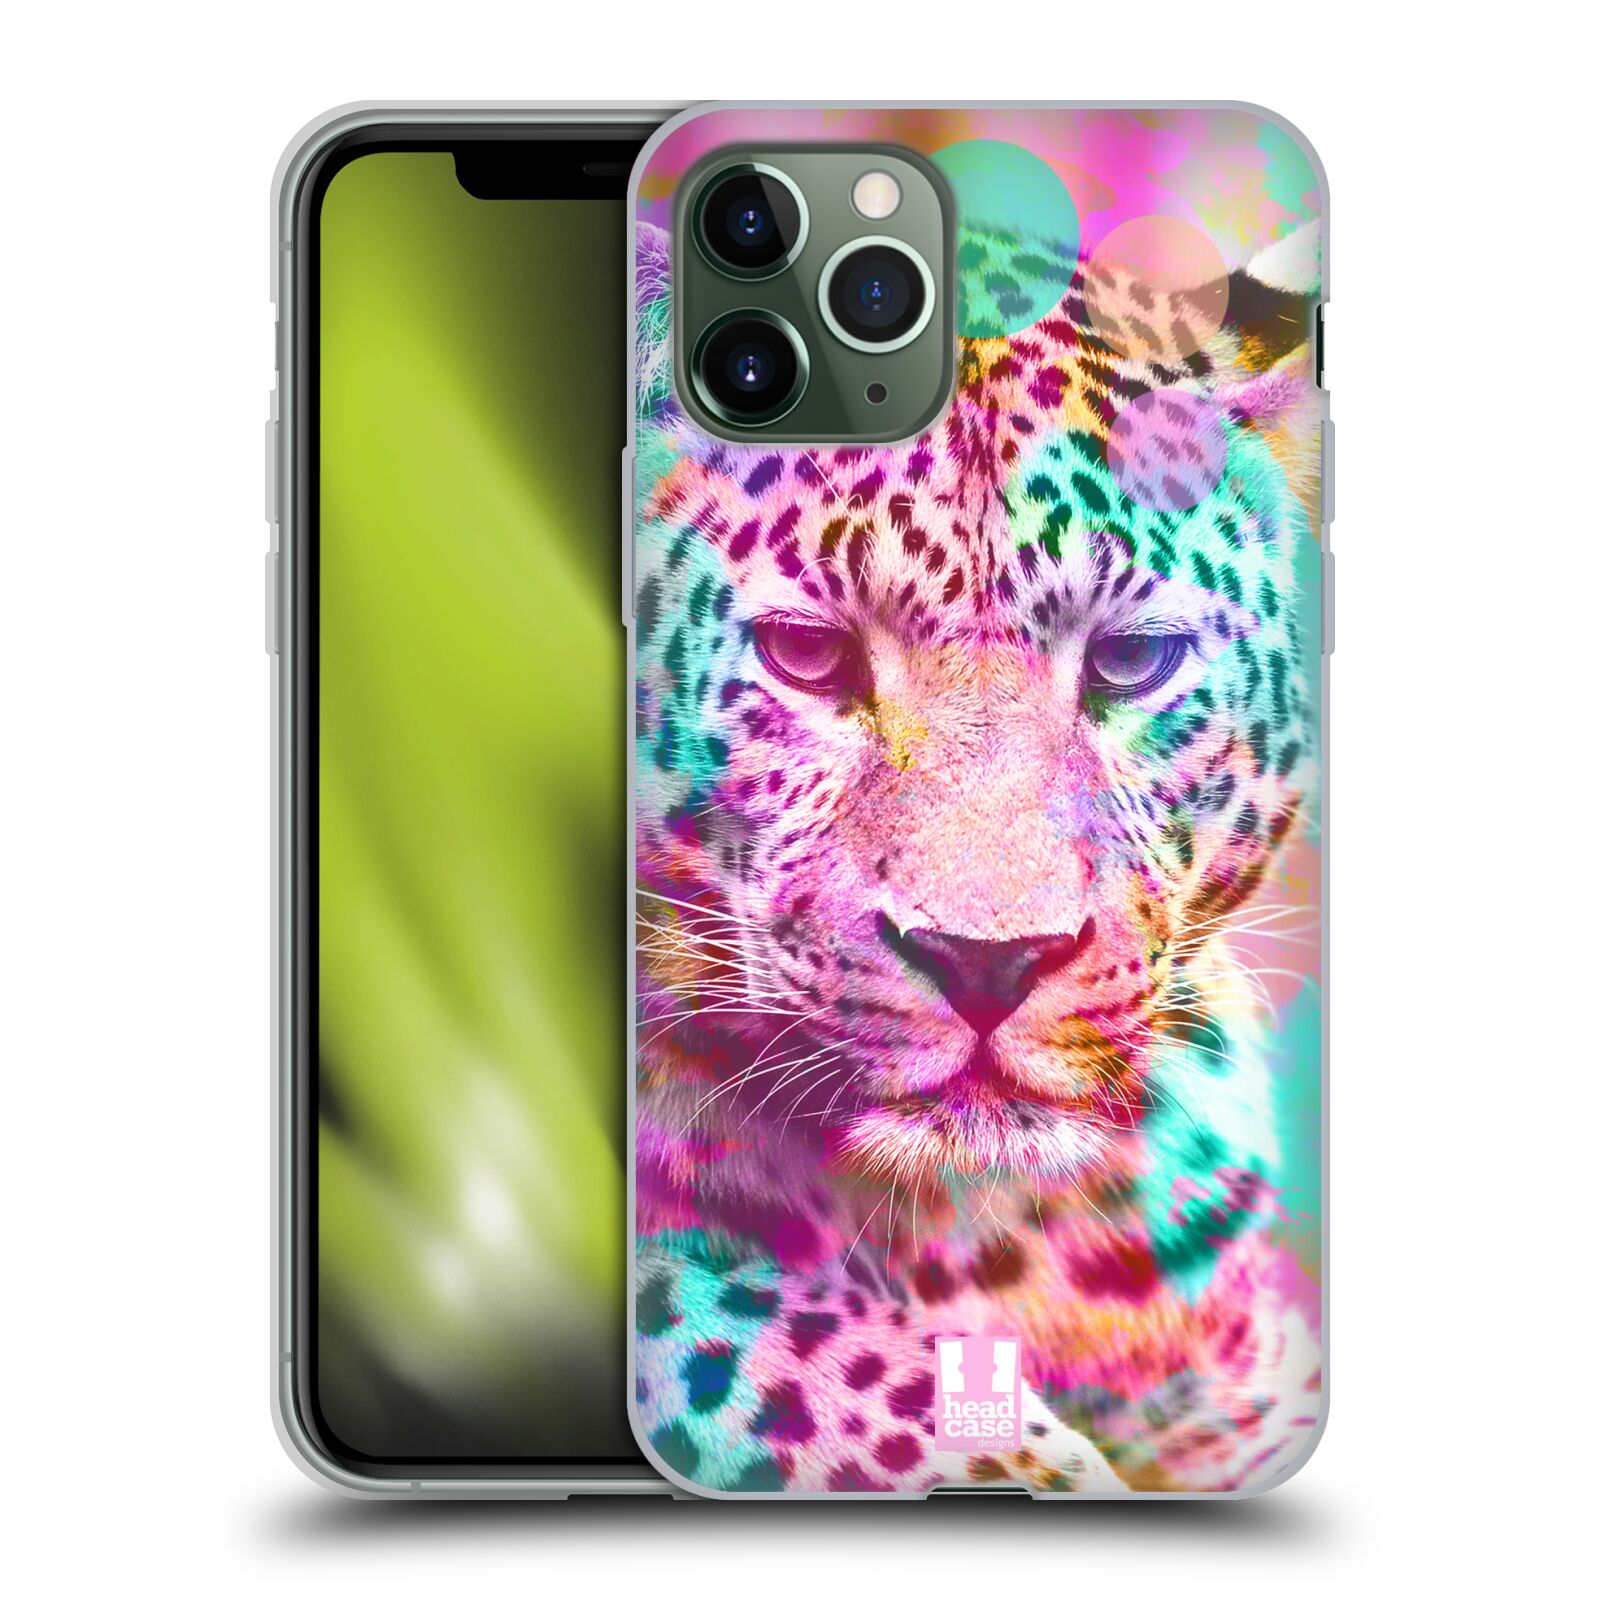 vodotesny krytu na iphone 6 plus - Silikonové pouzdro na mobil Apple iPhone 11 Pro - Head Case - MIX LEOPARD